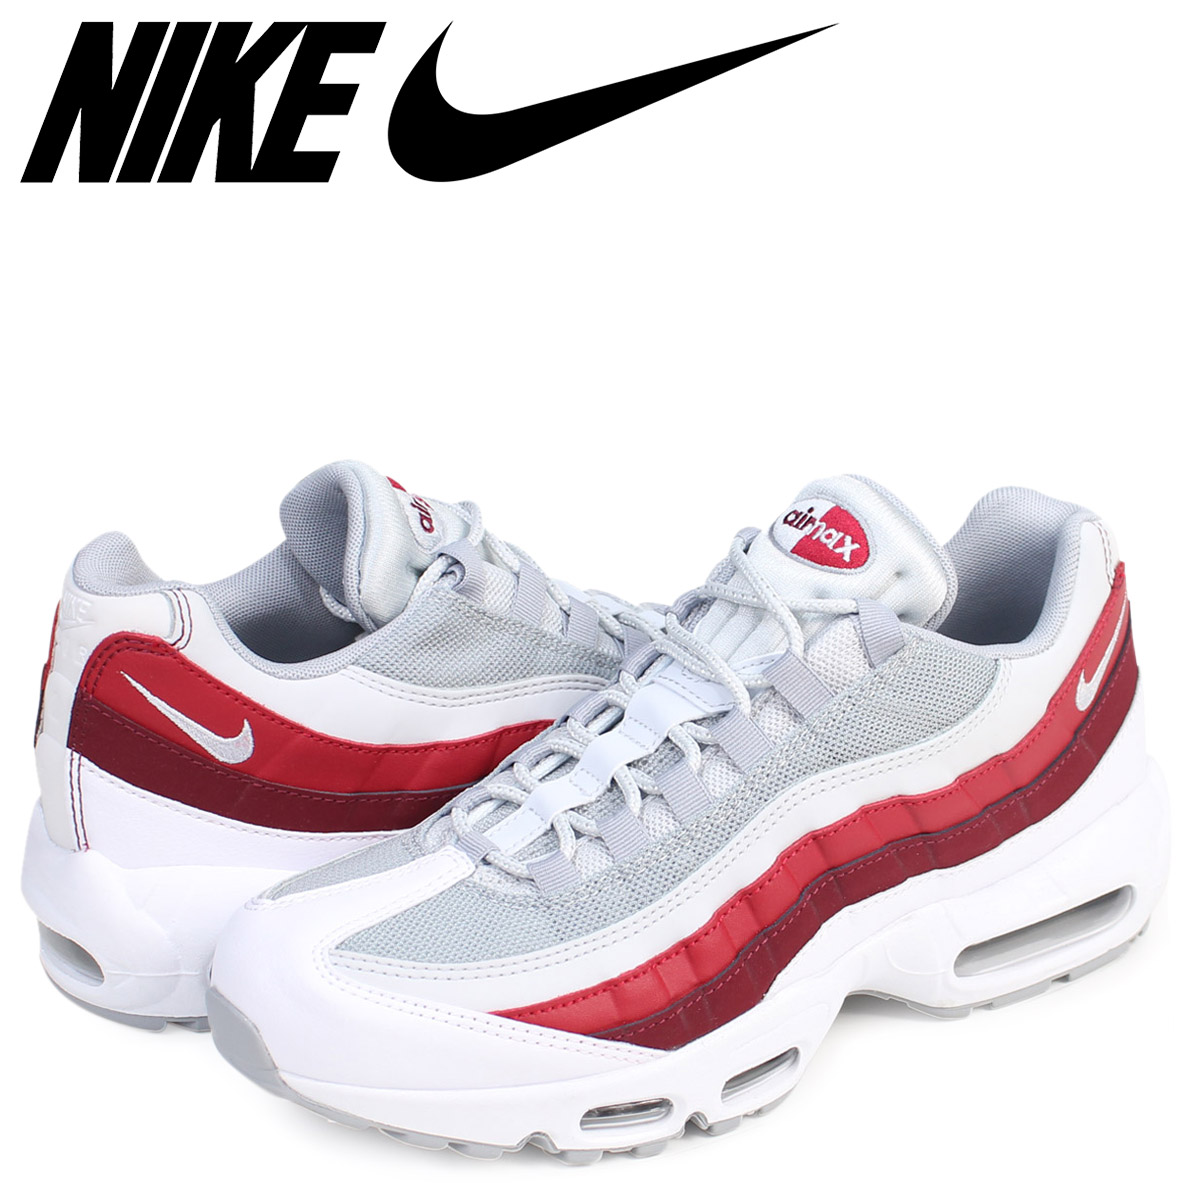 buy popular 615d8 143bb Nike Max 95 Shoe Shop A streetwear staple since 1982, the Air Force 1 was  the first basketball ...